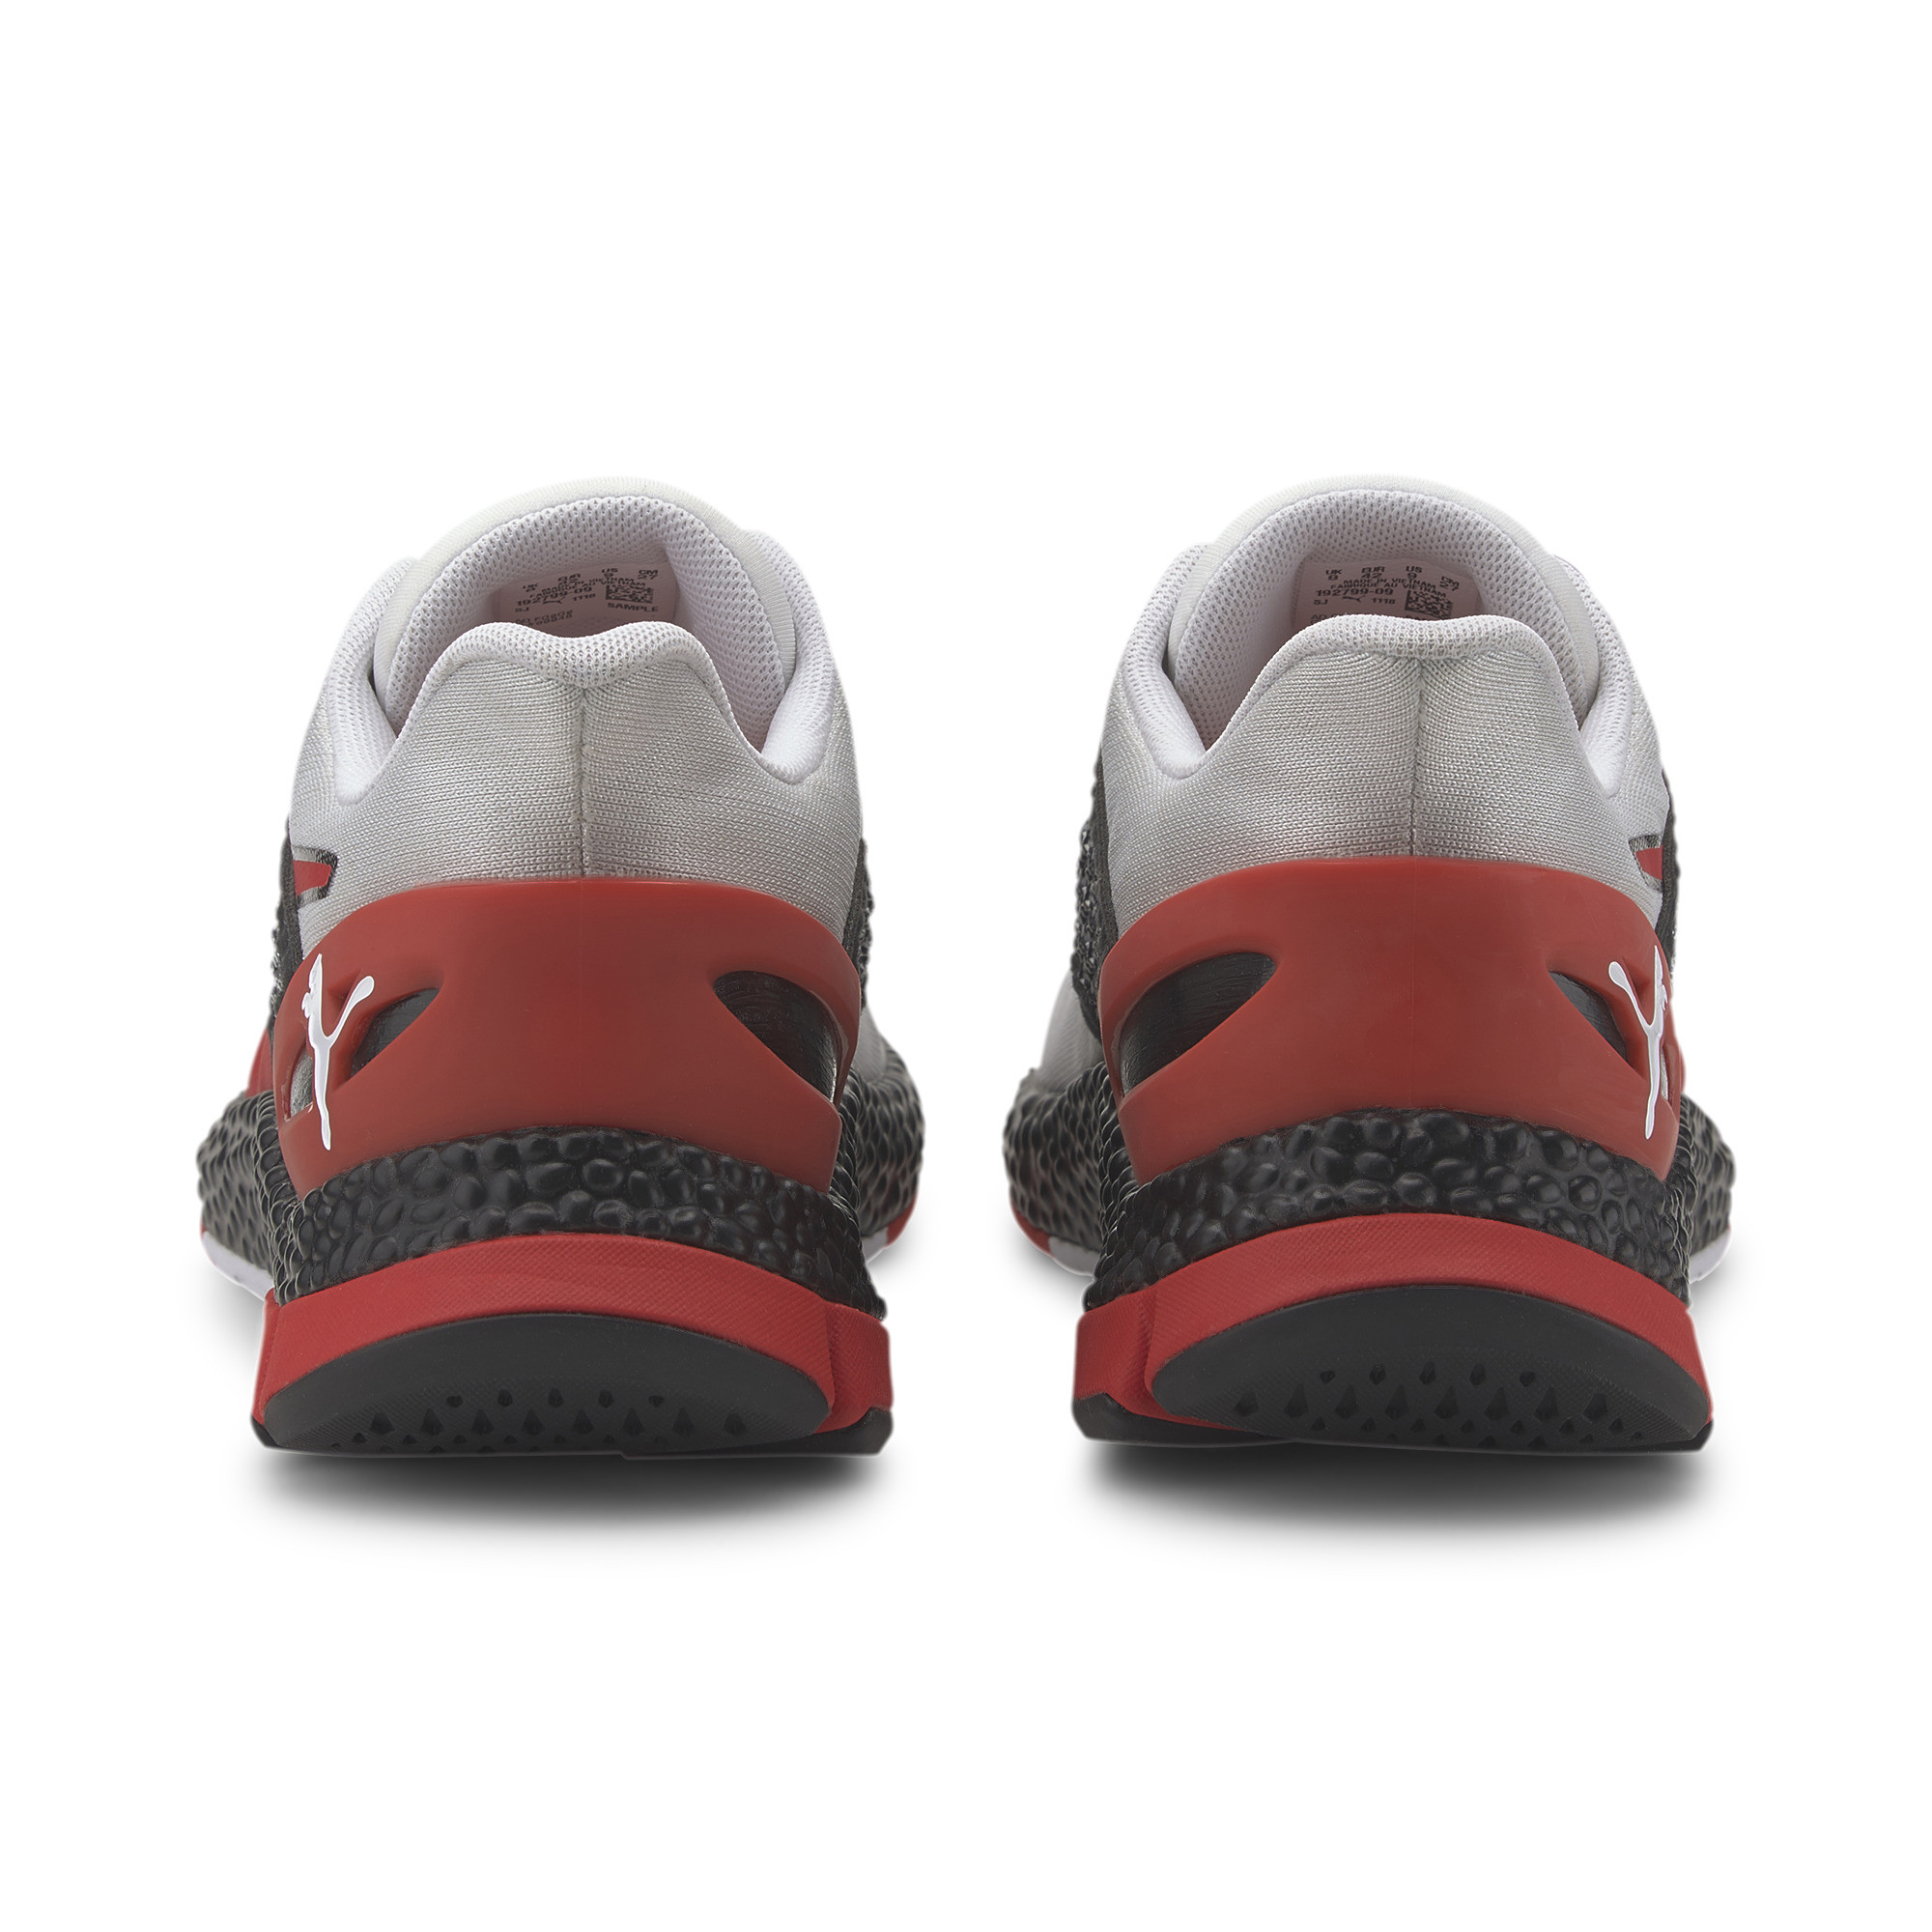 PUMA-Men-039-s-HYBRID-Astro-Running-Shoes thumbnail 19